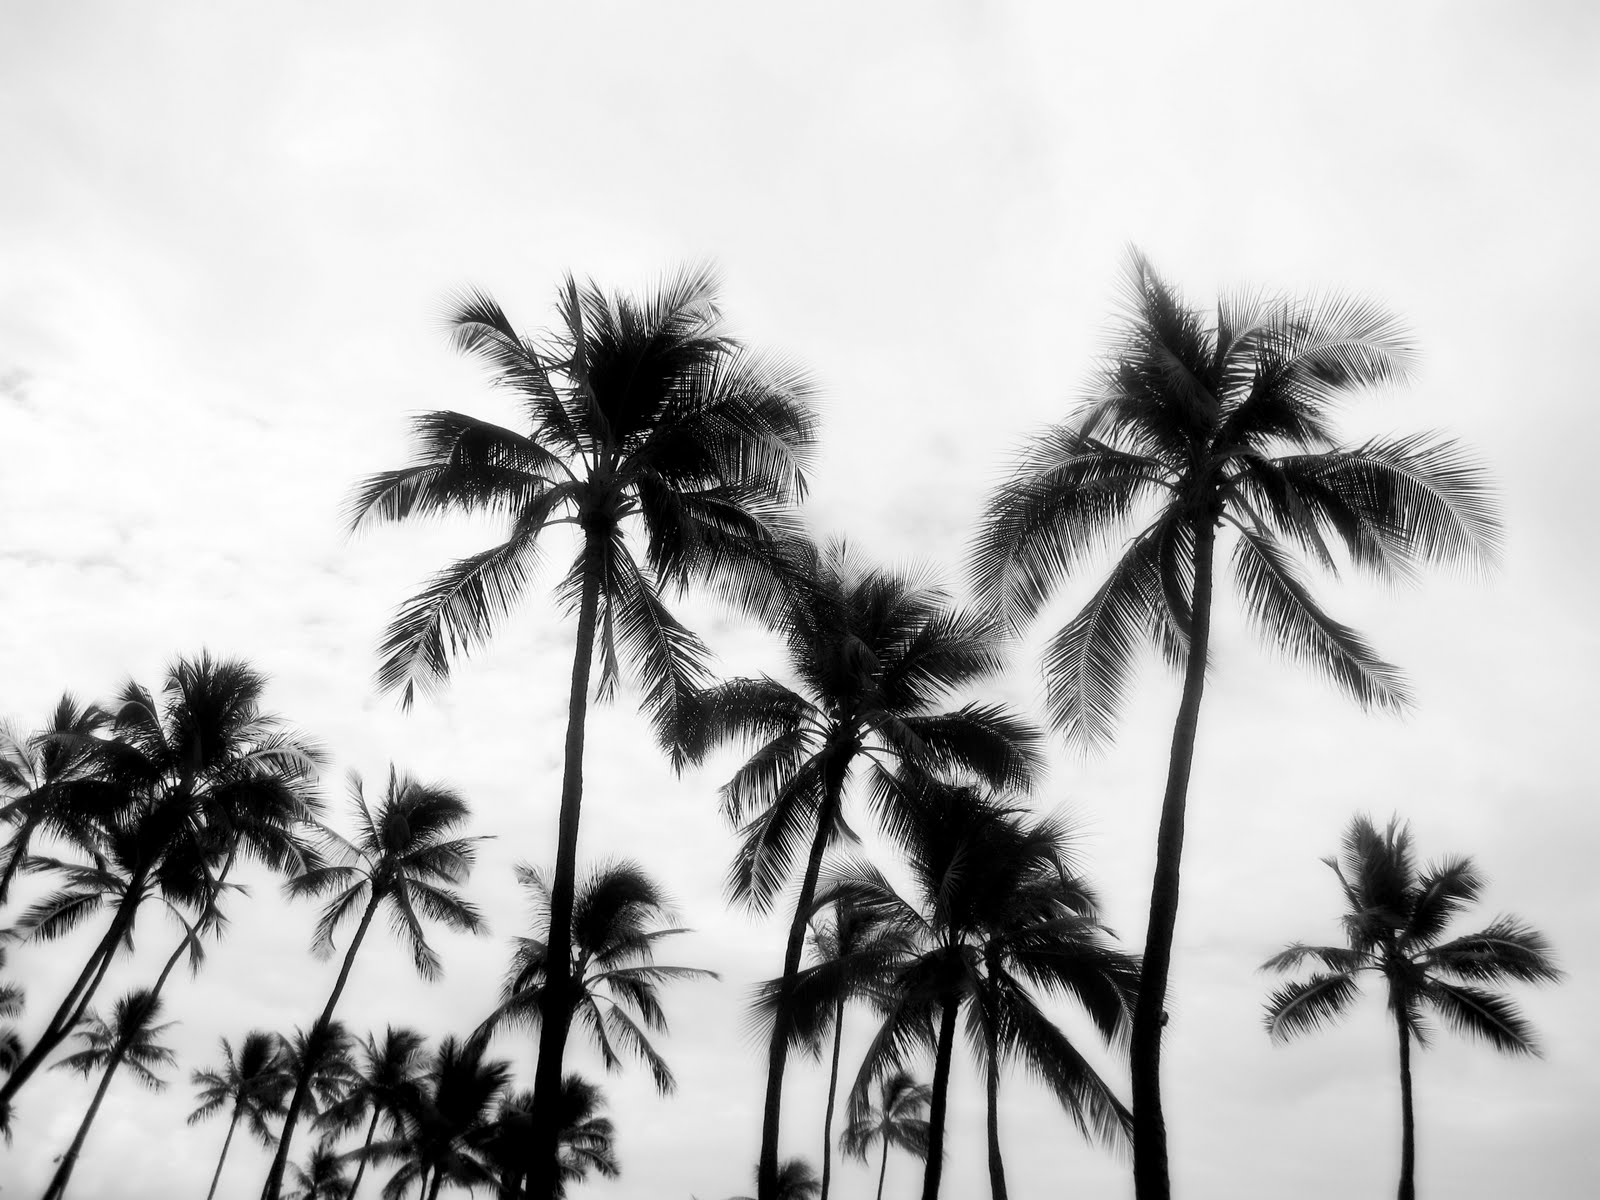 palm trees tumblr black and white23 and